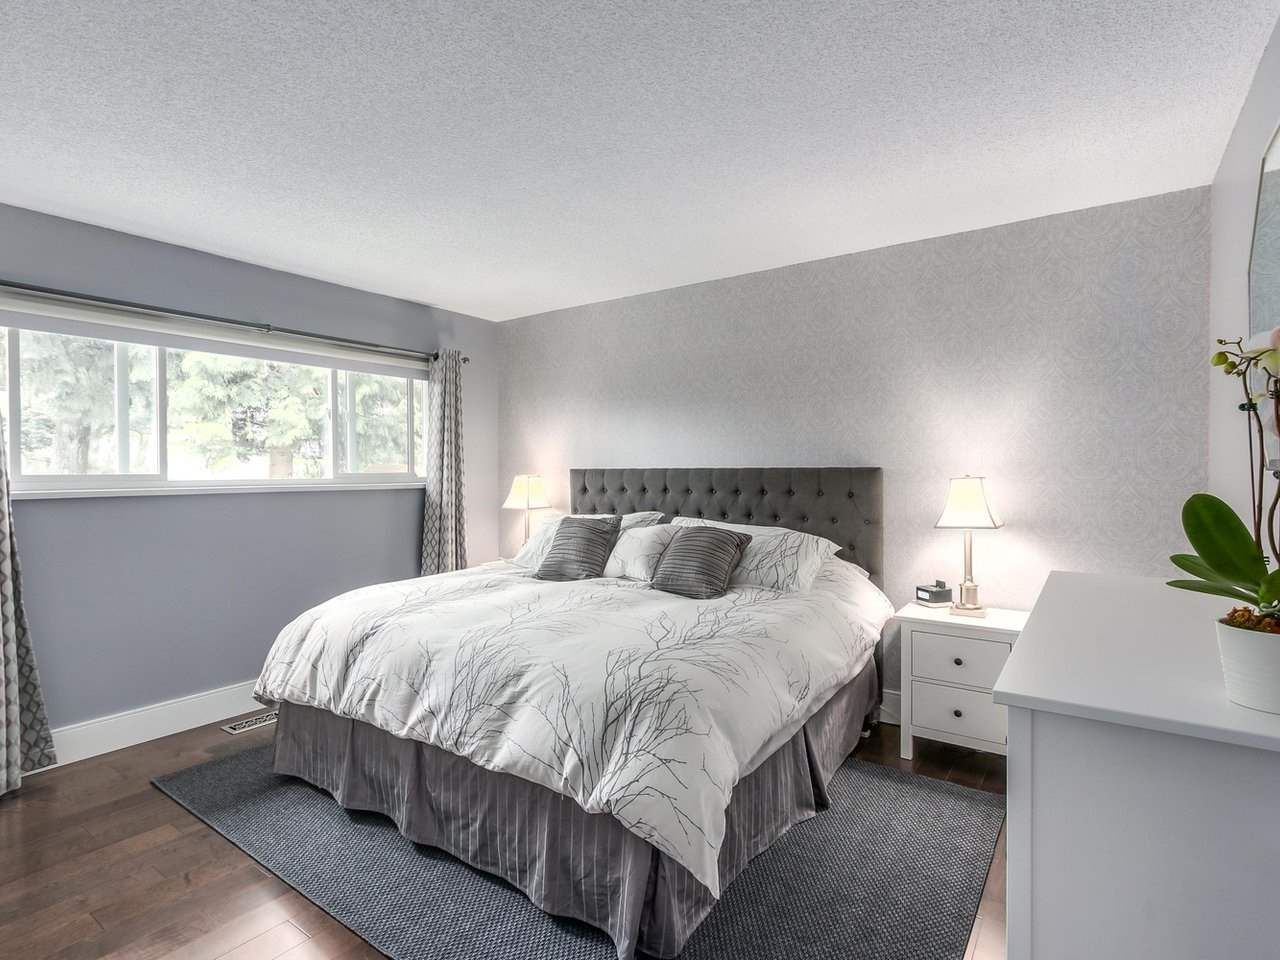 Photo 9: Photos: 2720 HAWSER Avenue in Coquitlam: Ranch Park House for sale : MLS®# R2161090